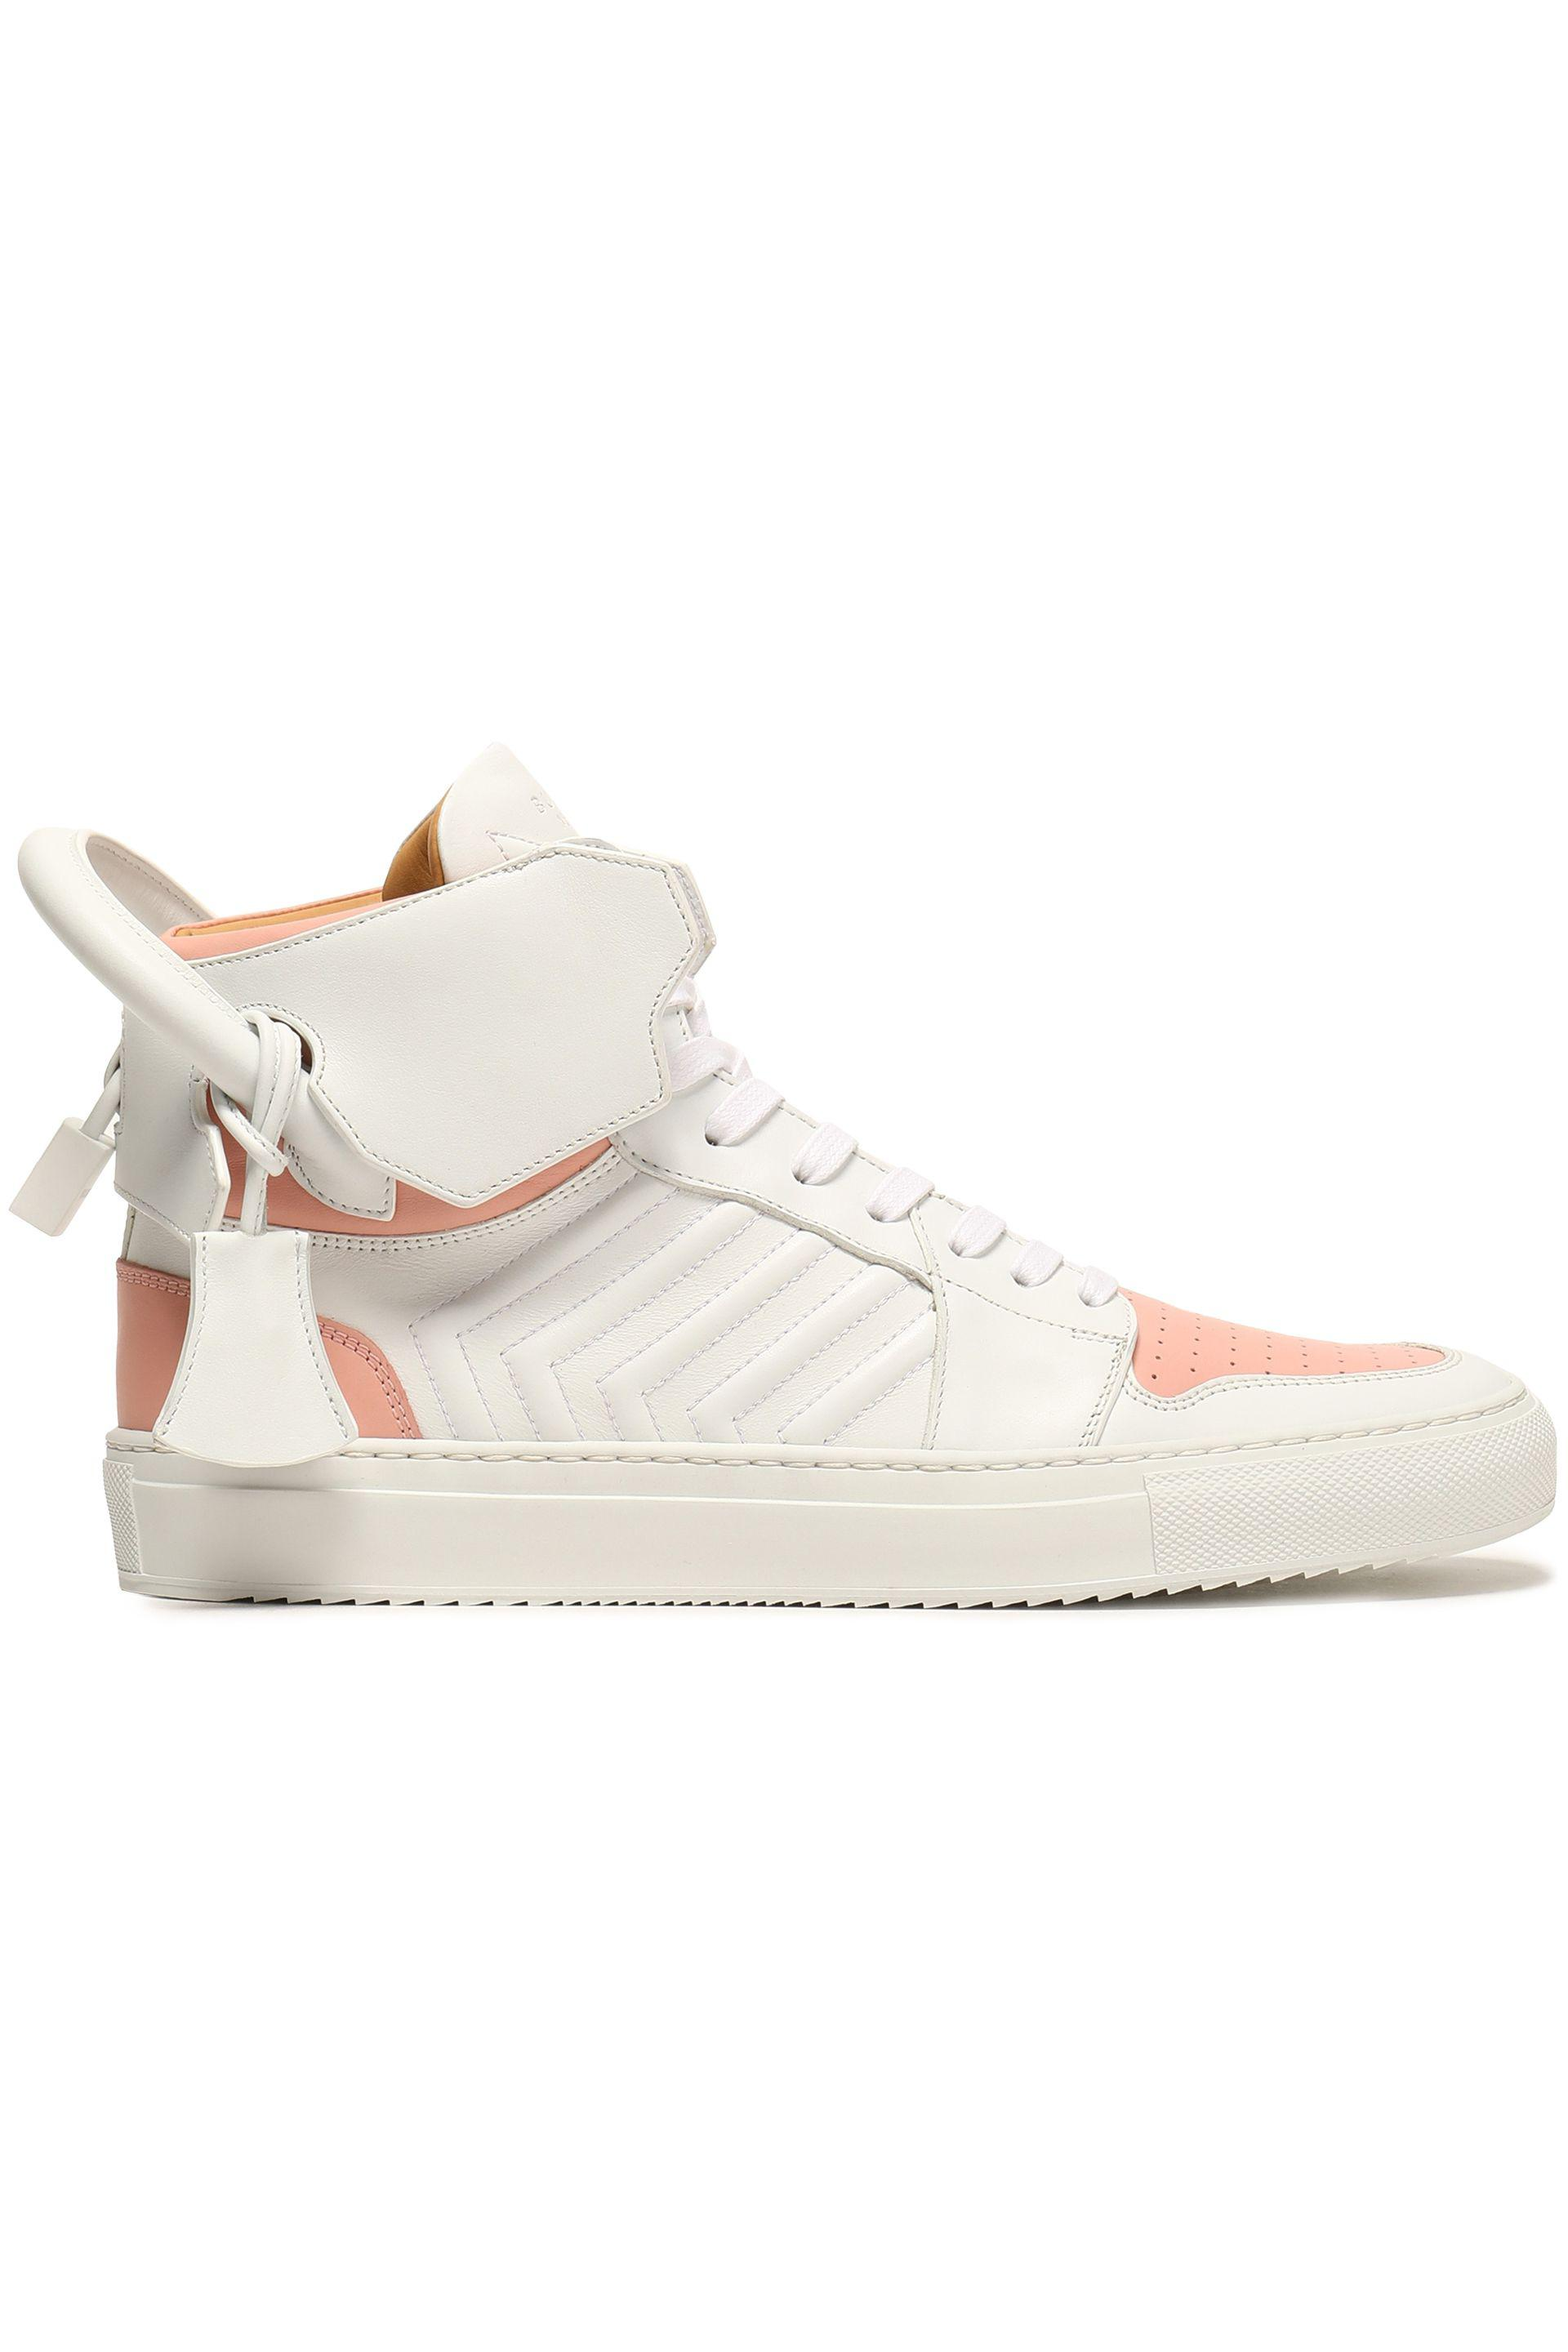 Buscemi Woman Embellished Two-tone Leather High-top Sneakers White Size 38 Buscemi cPhD58h